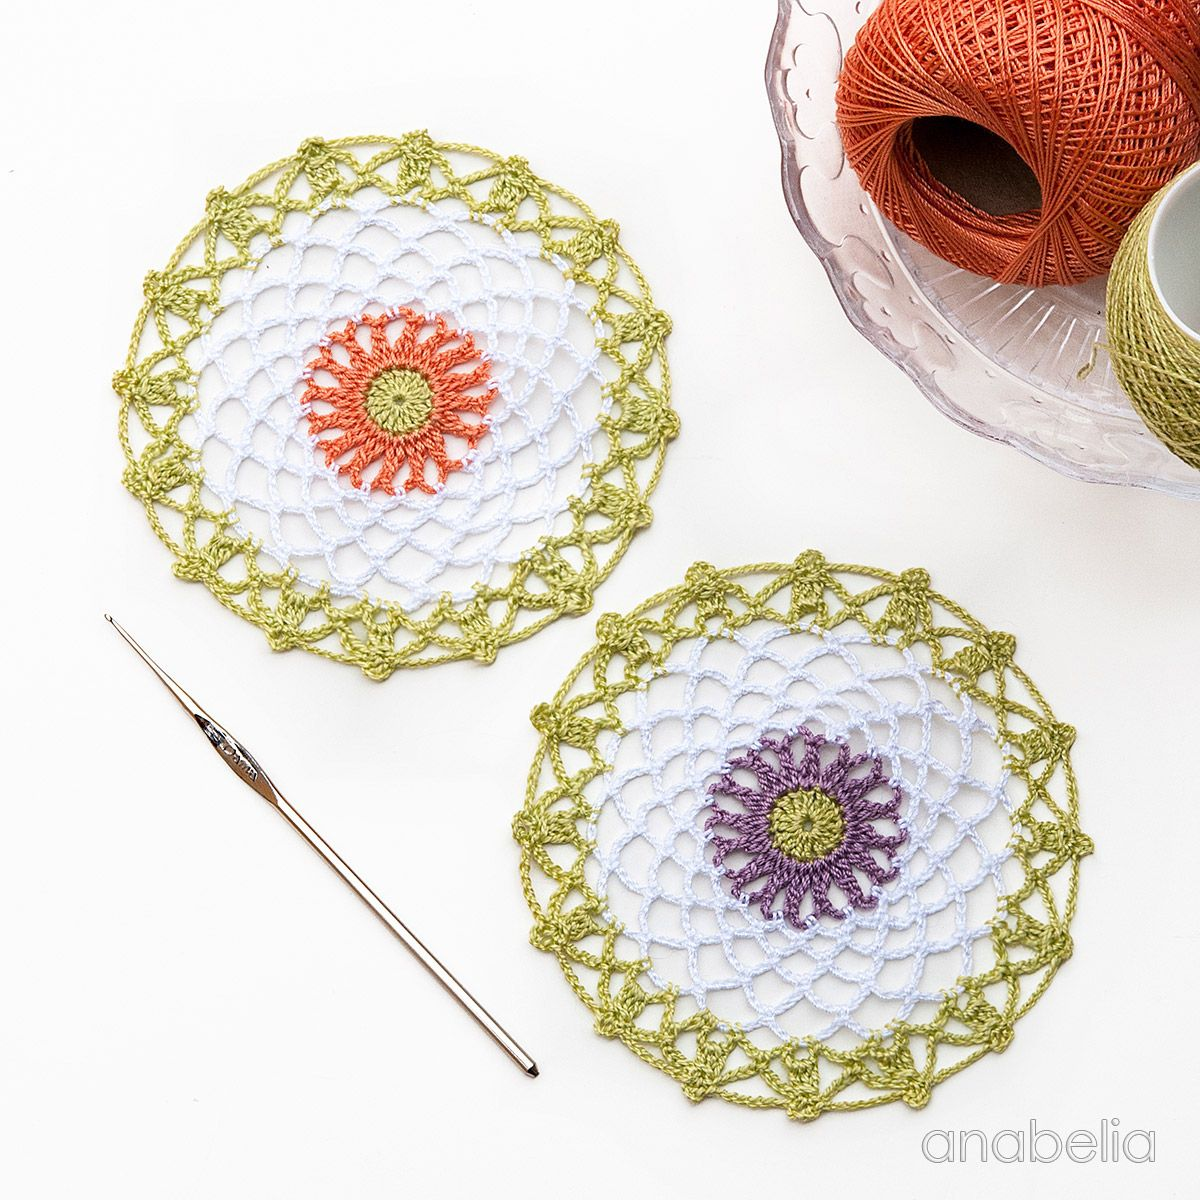 Mini crochet doilies free pattern, Anabelia Craft Design | tejidos ...